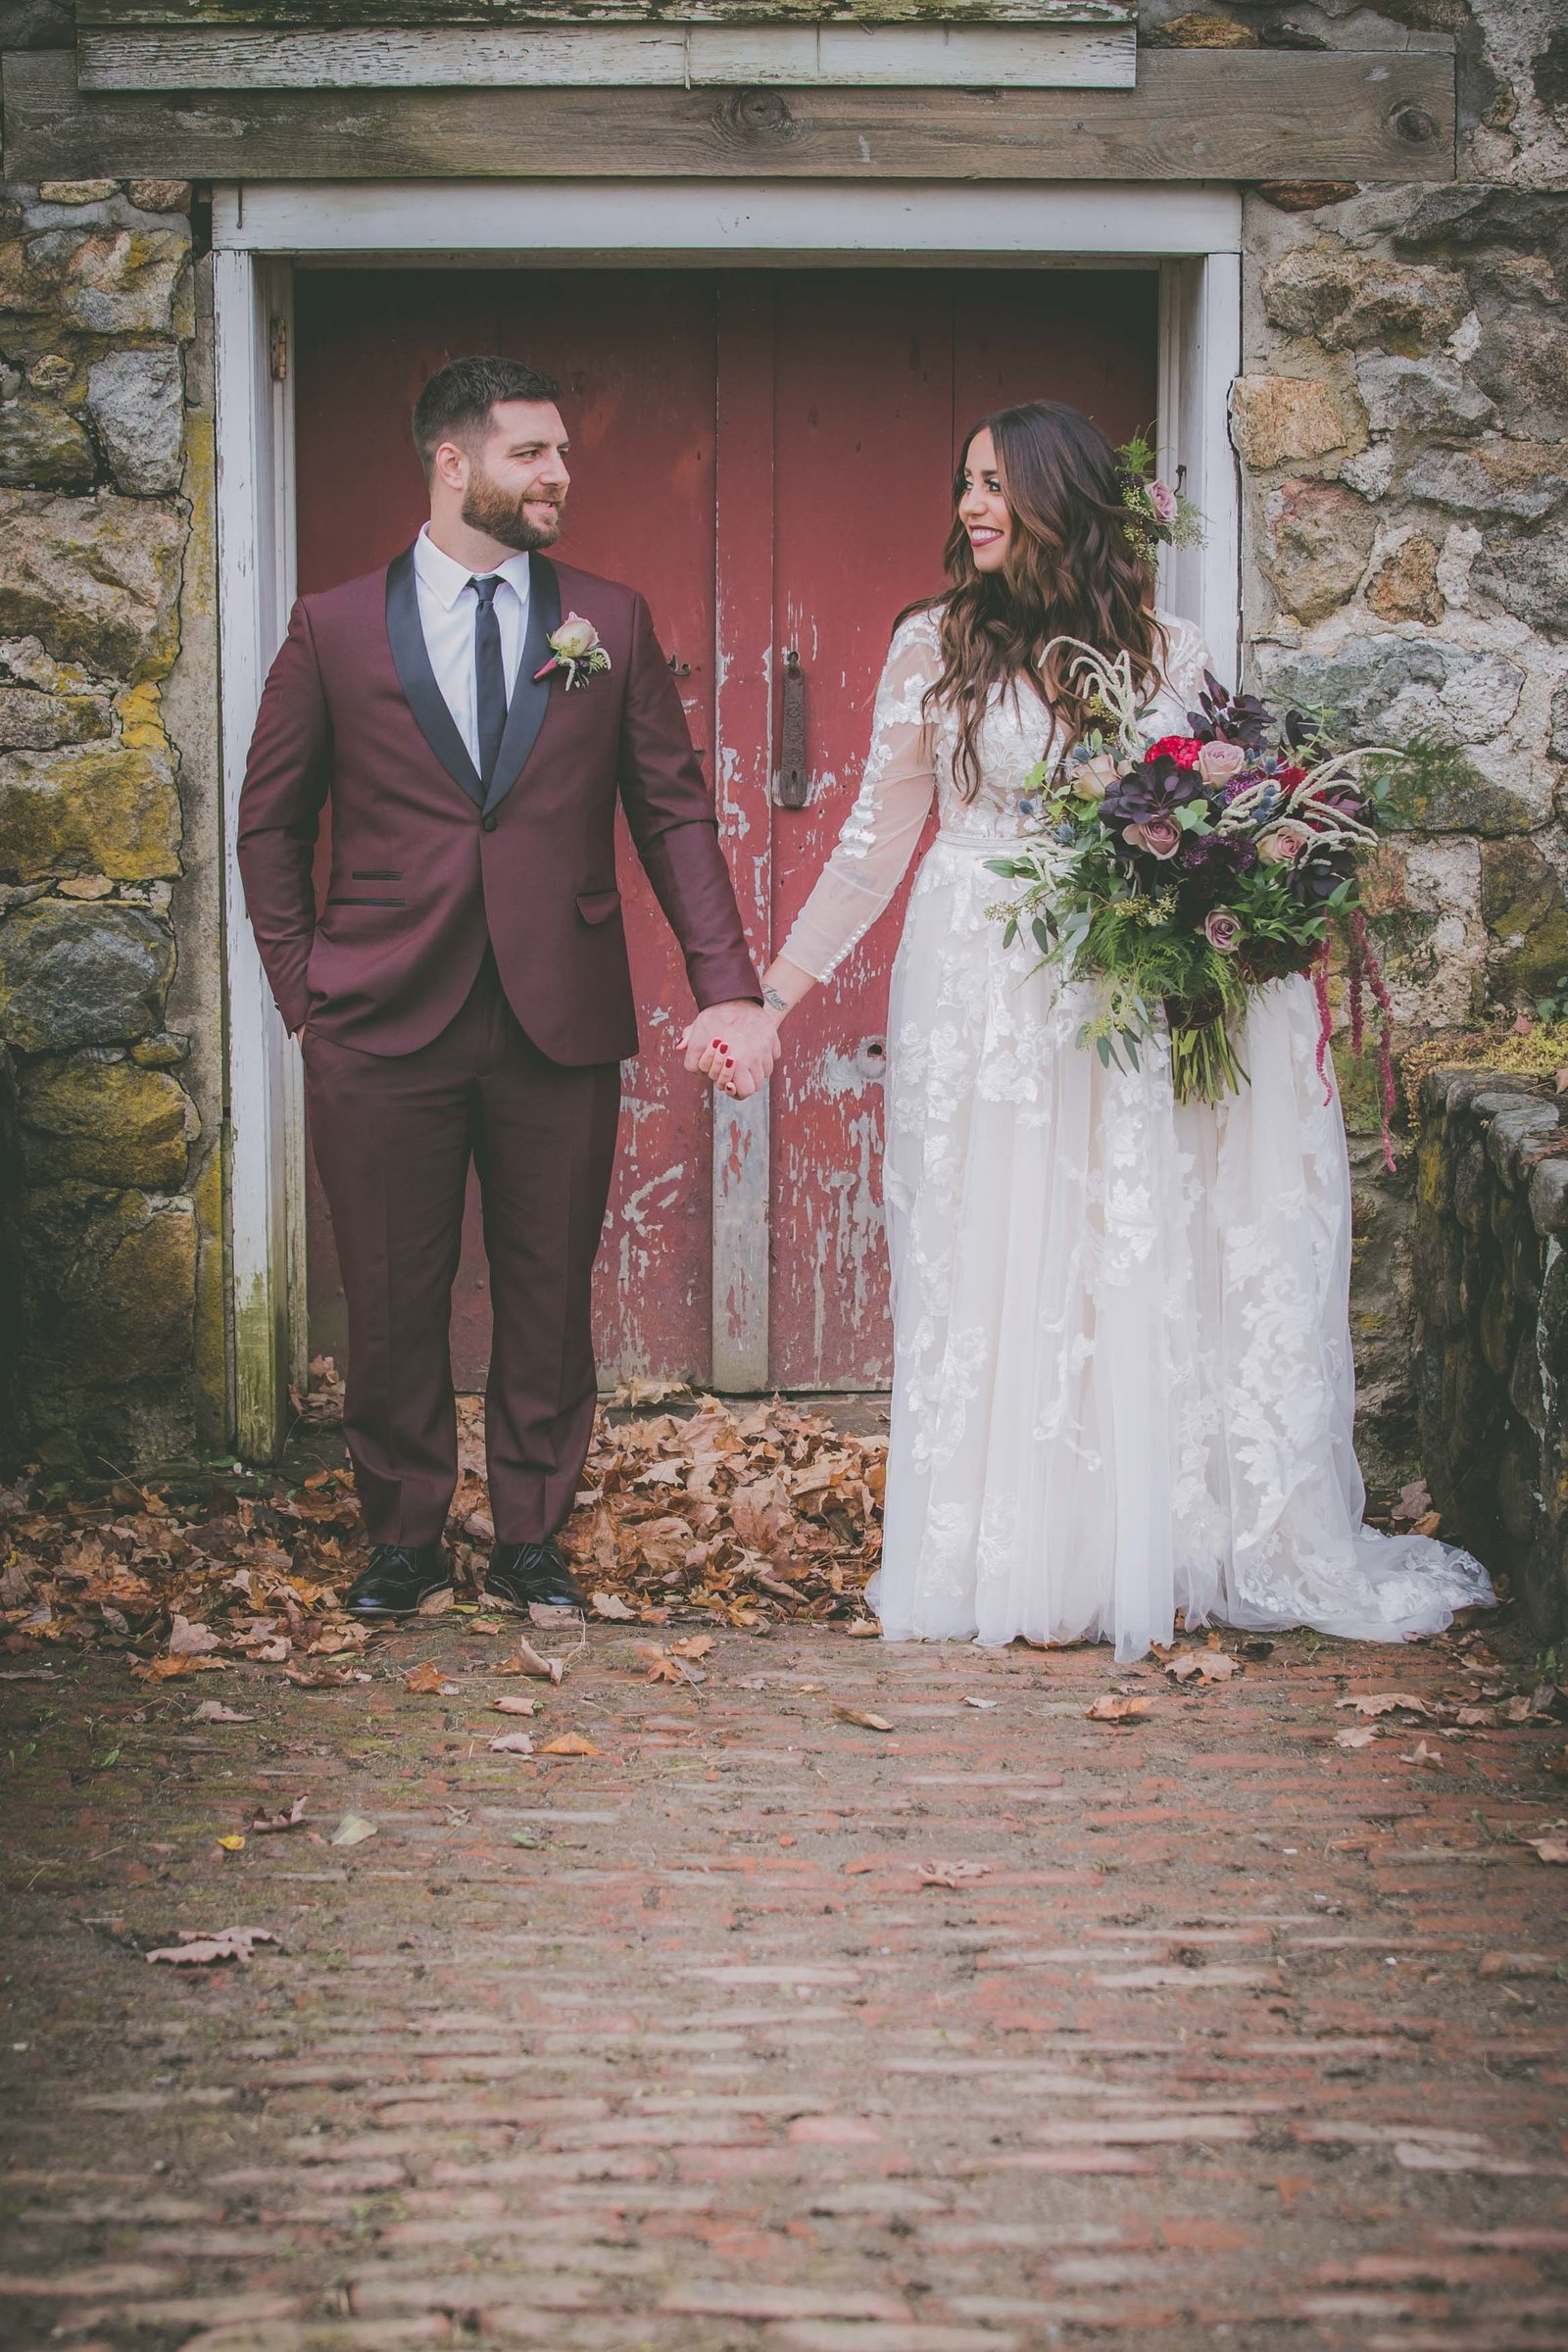 Groom and bride hold hands against a red door.